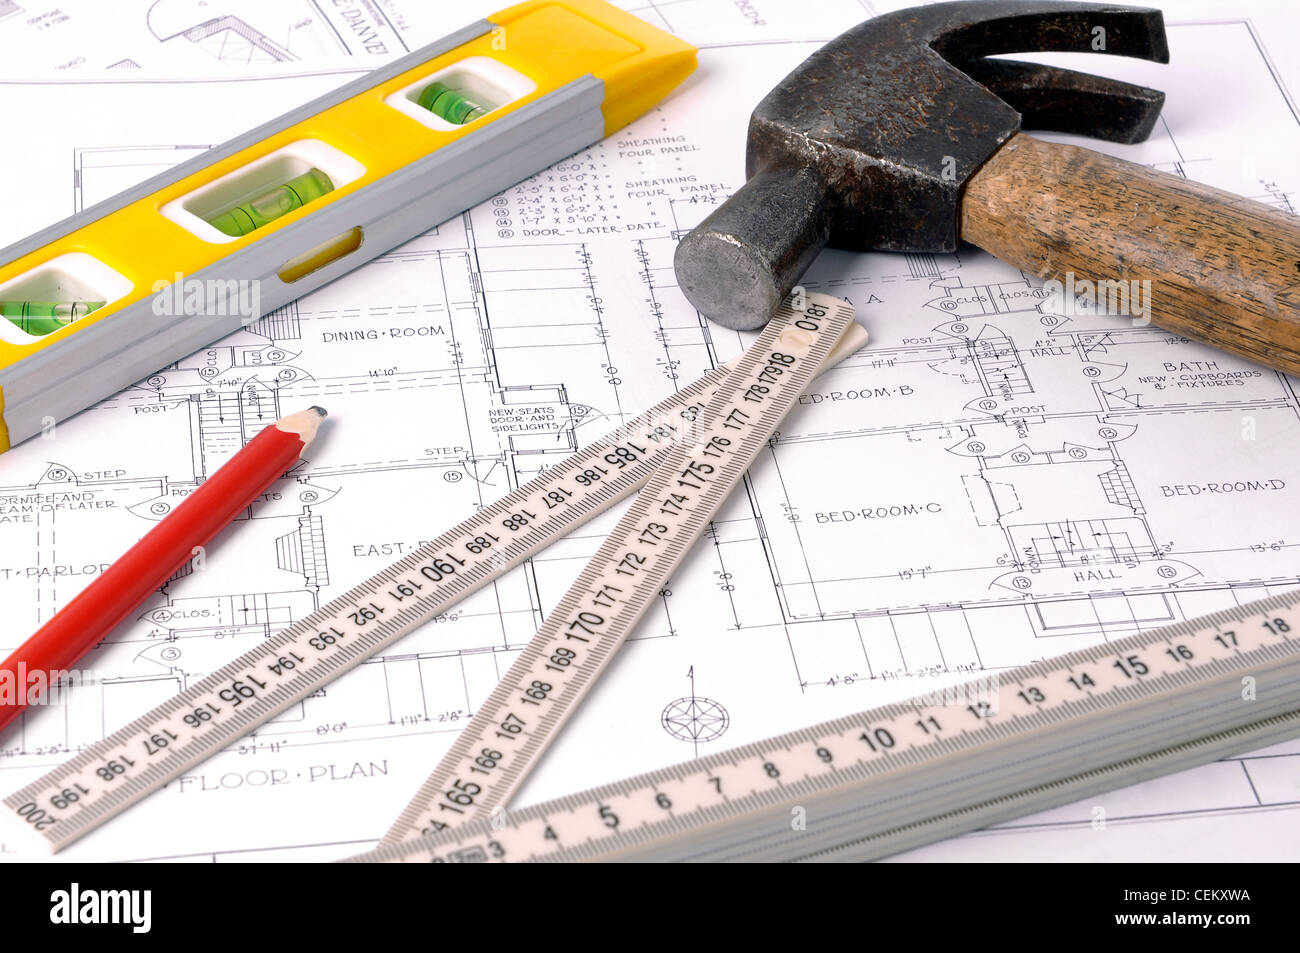 House blueprints, old hammer, pencil, level and measure - Stock Image